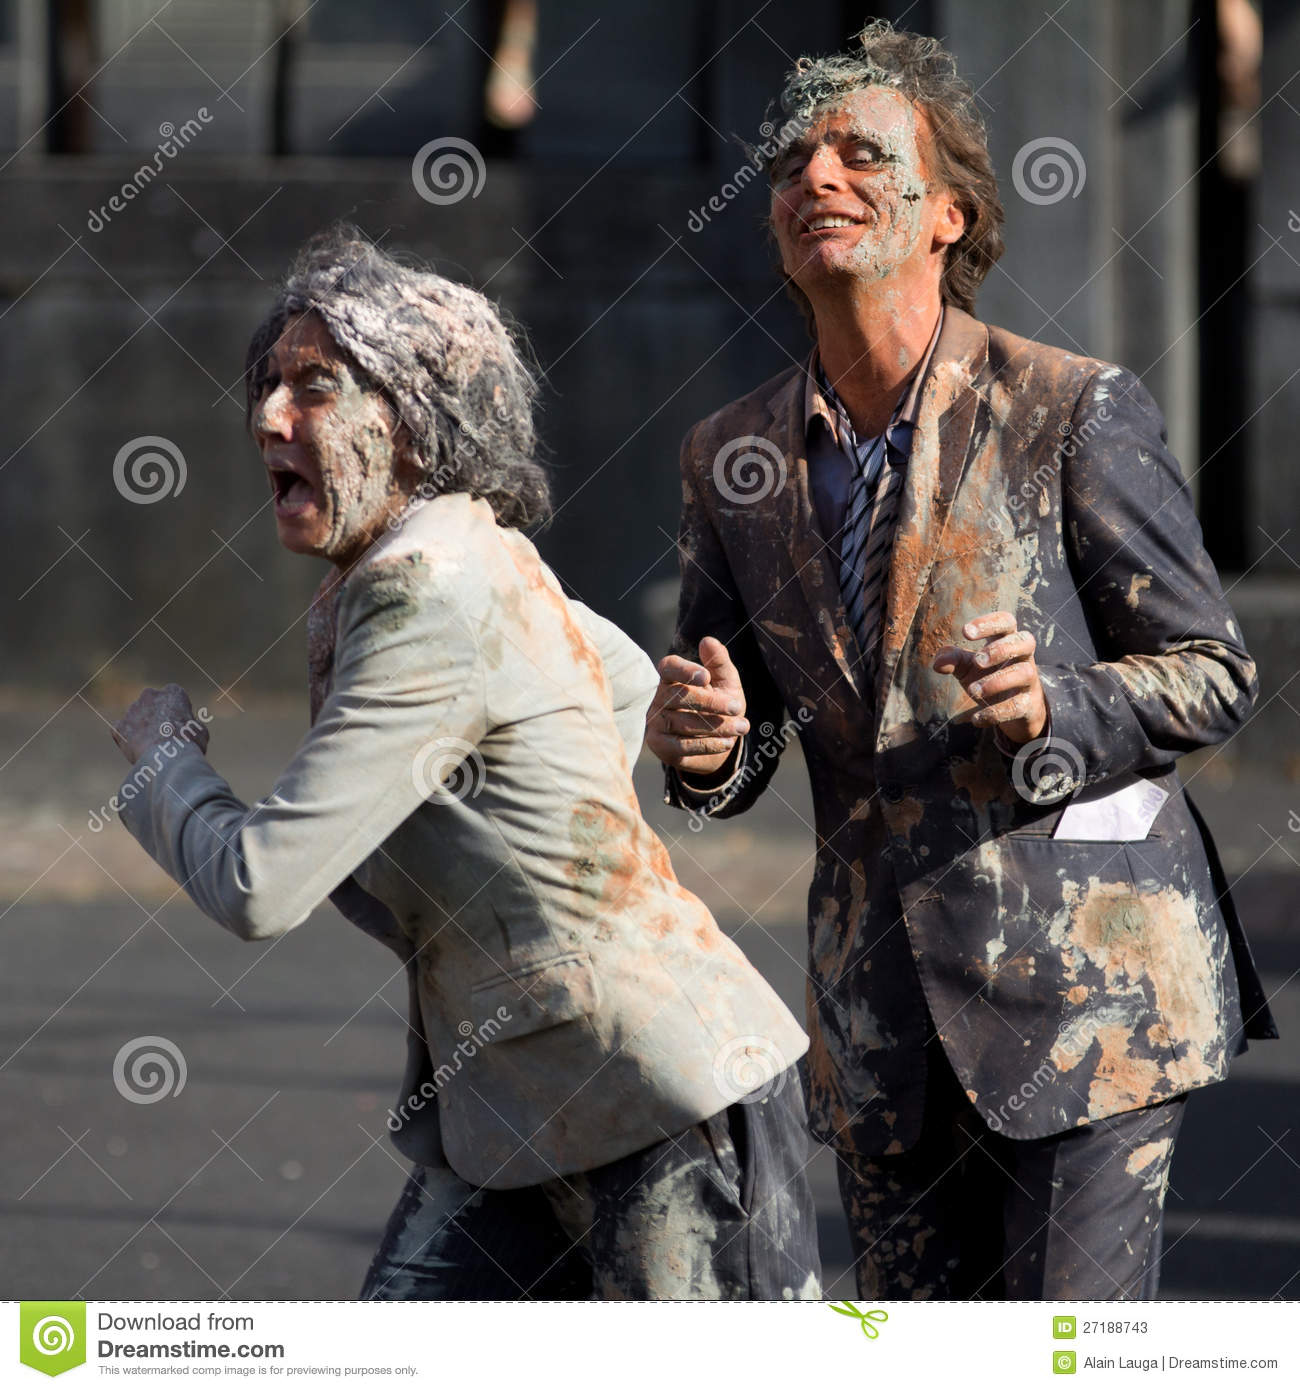 Download Very Dirty Actors In The Street Editorial Stock Photo - Image of dancer, festival: 27188743